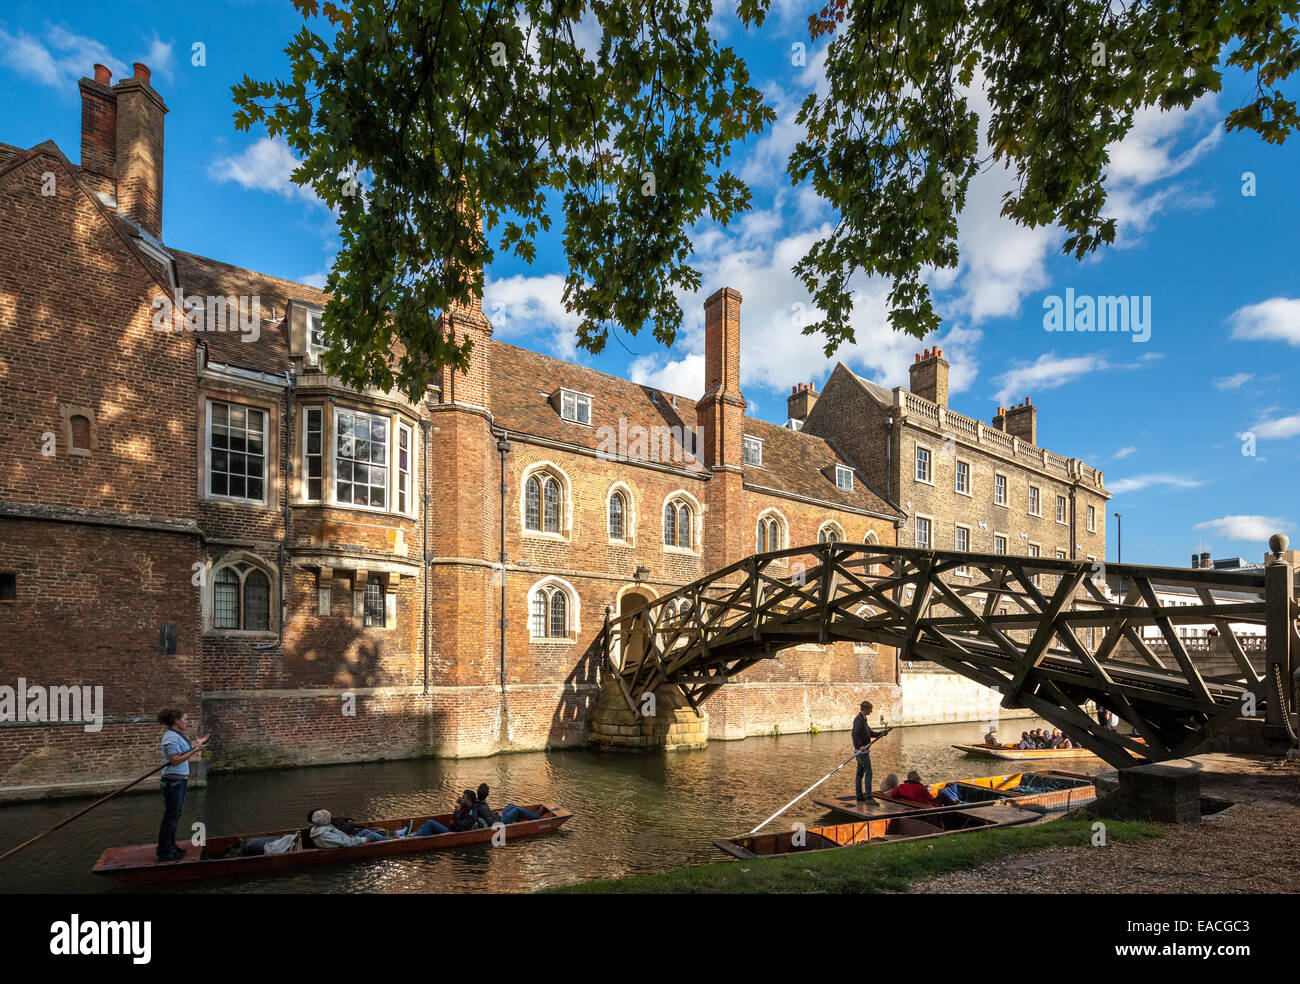 https://c7.alamy.com/comp/EACGC3/cambridge-mathematical-bridge-on-the-river-cam-at-queens-college-with-EACGC3.jpg